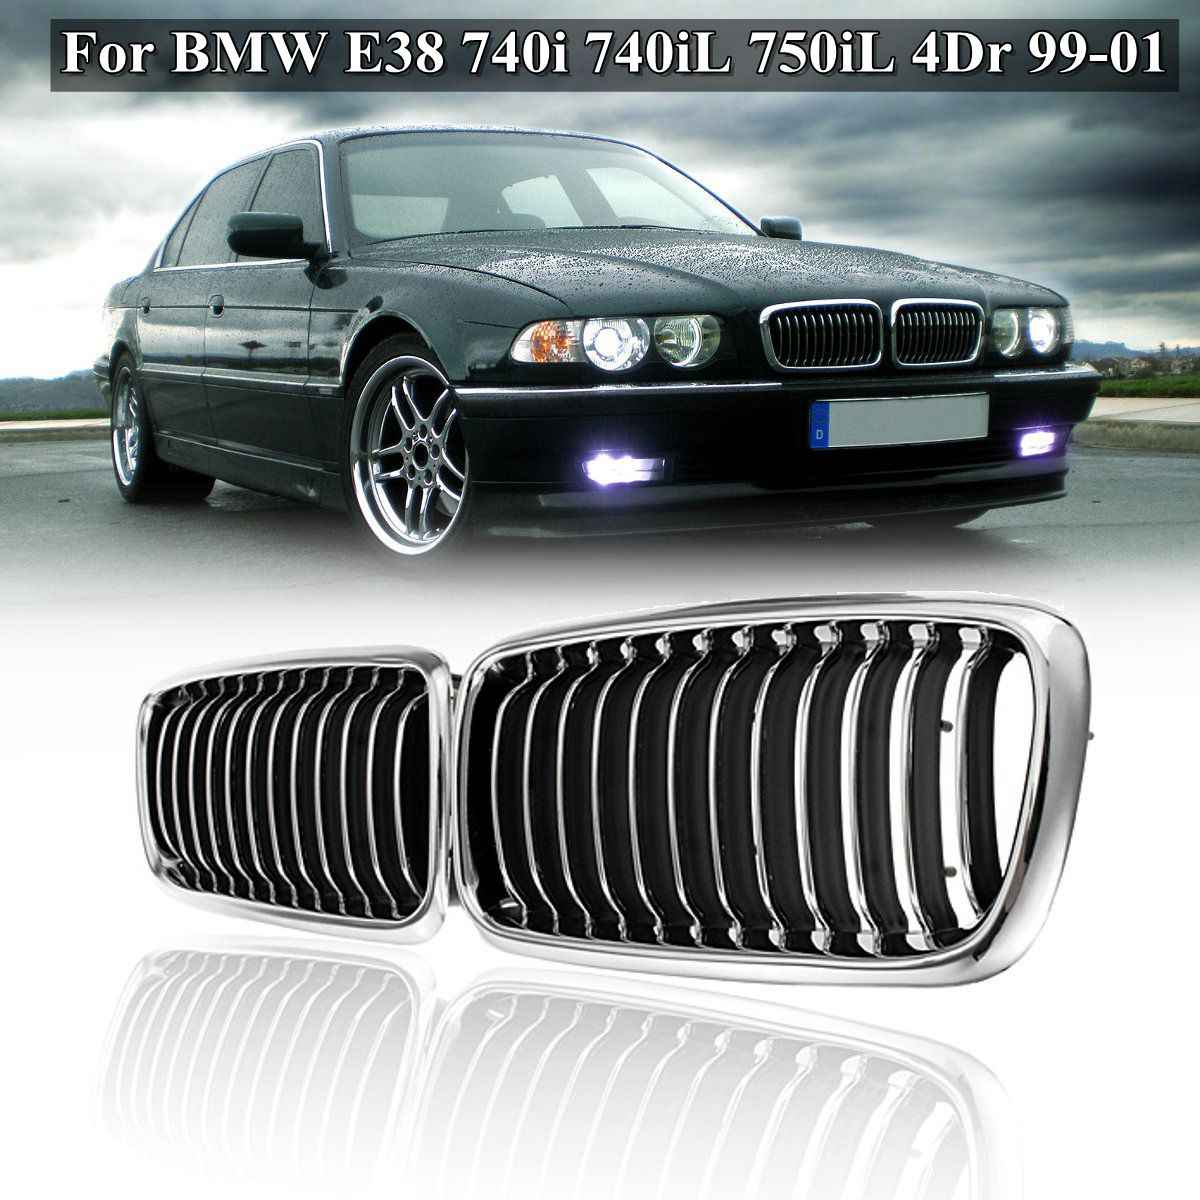 medium resolution of pair matte black chrome front grill grille for bmw e38 740i 740il 750il 4dr 1999 2000